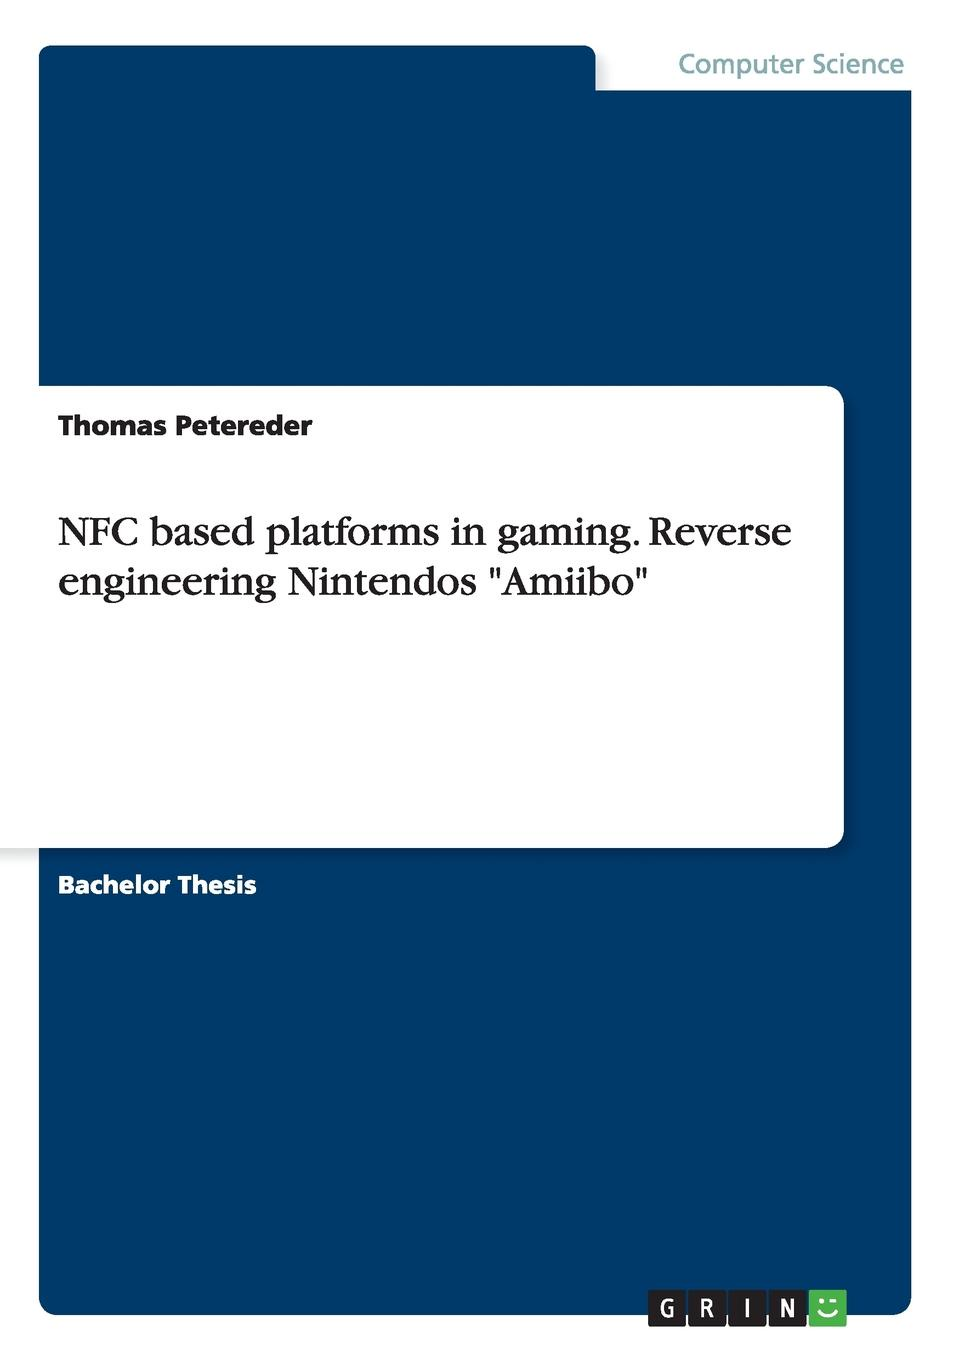 Thomas Petereder NFC based platforms in gaming. Reverse engineering Nintendos Amiibo фигурка amiibo the legend of zelda зельда the wind waker